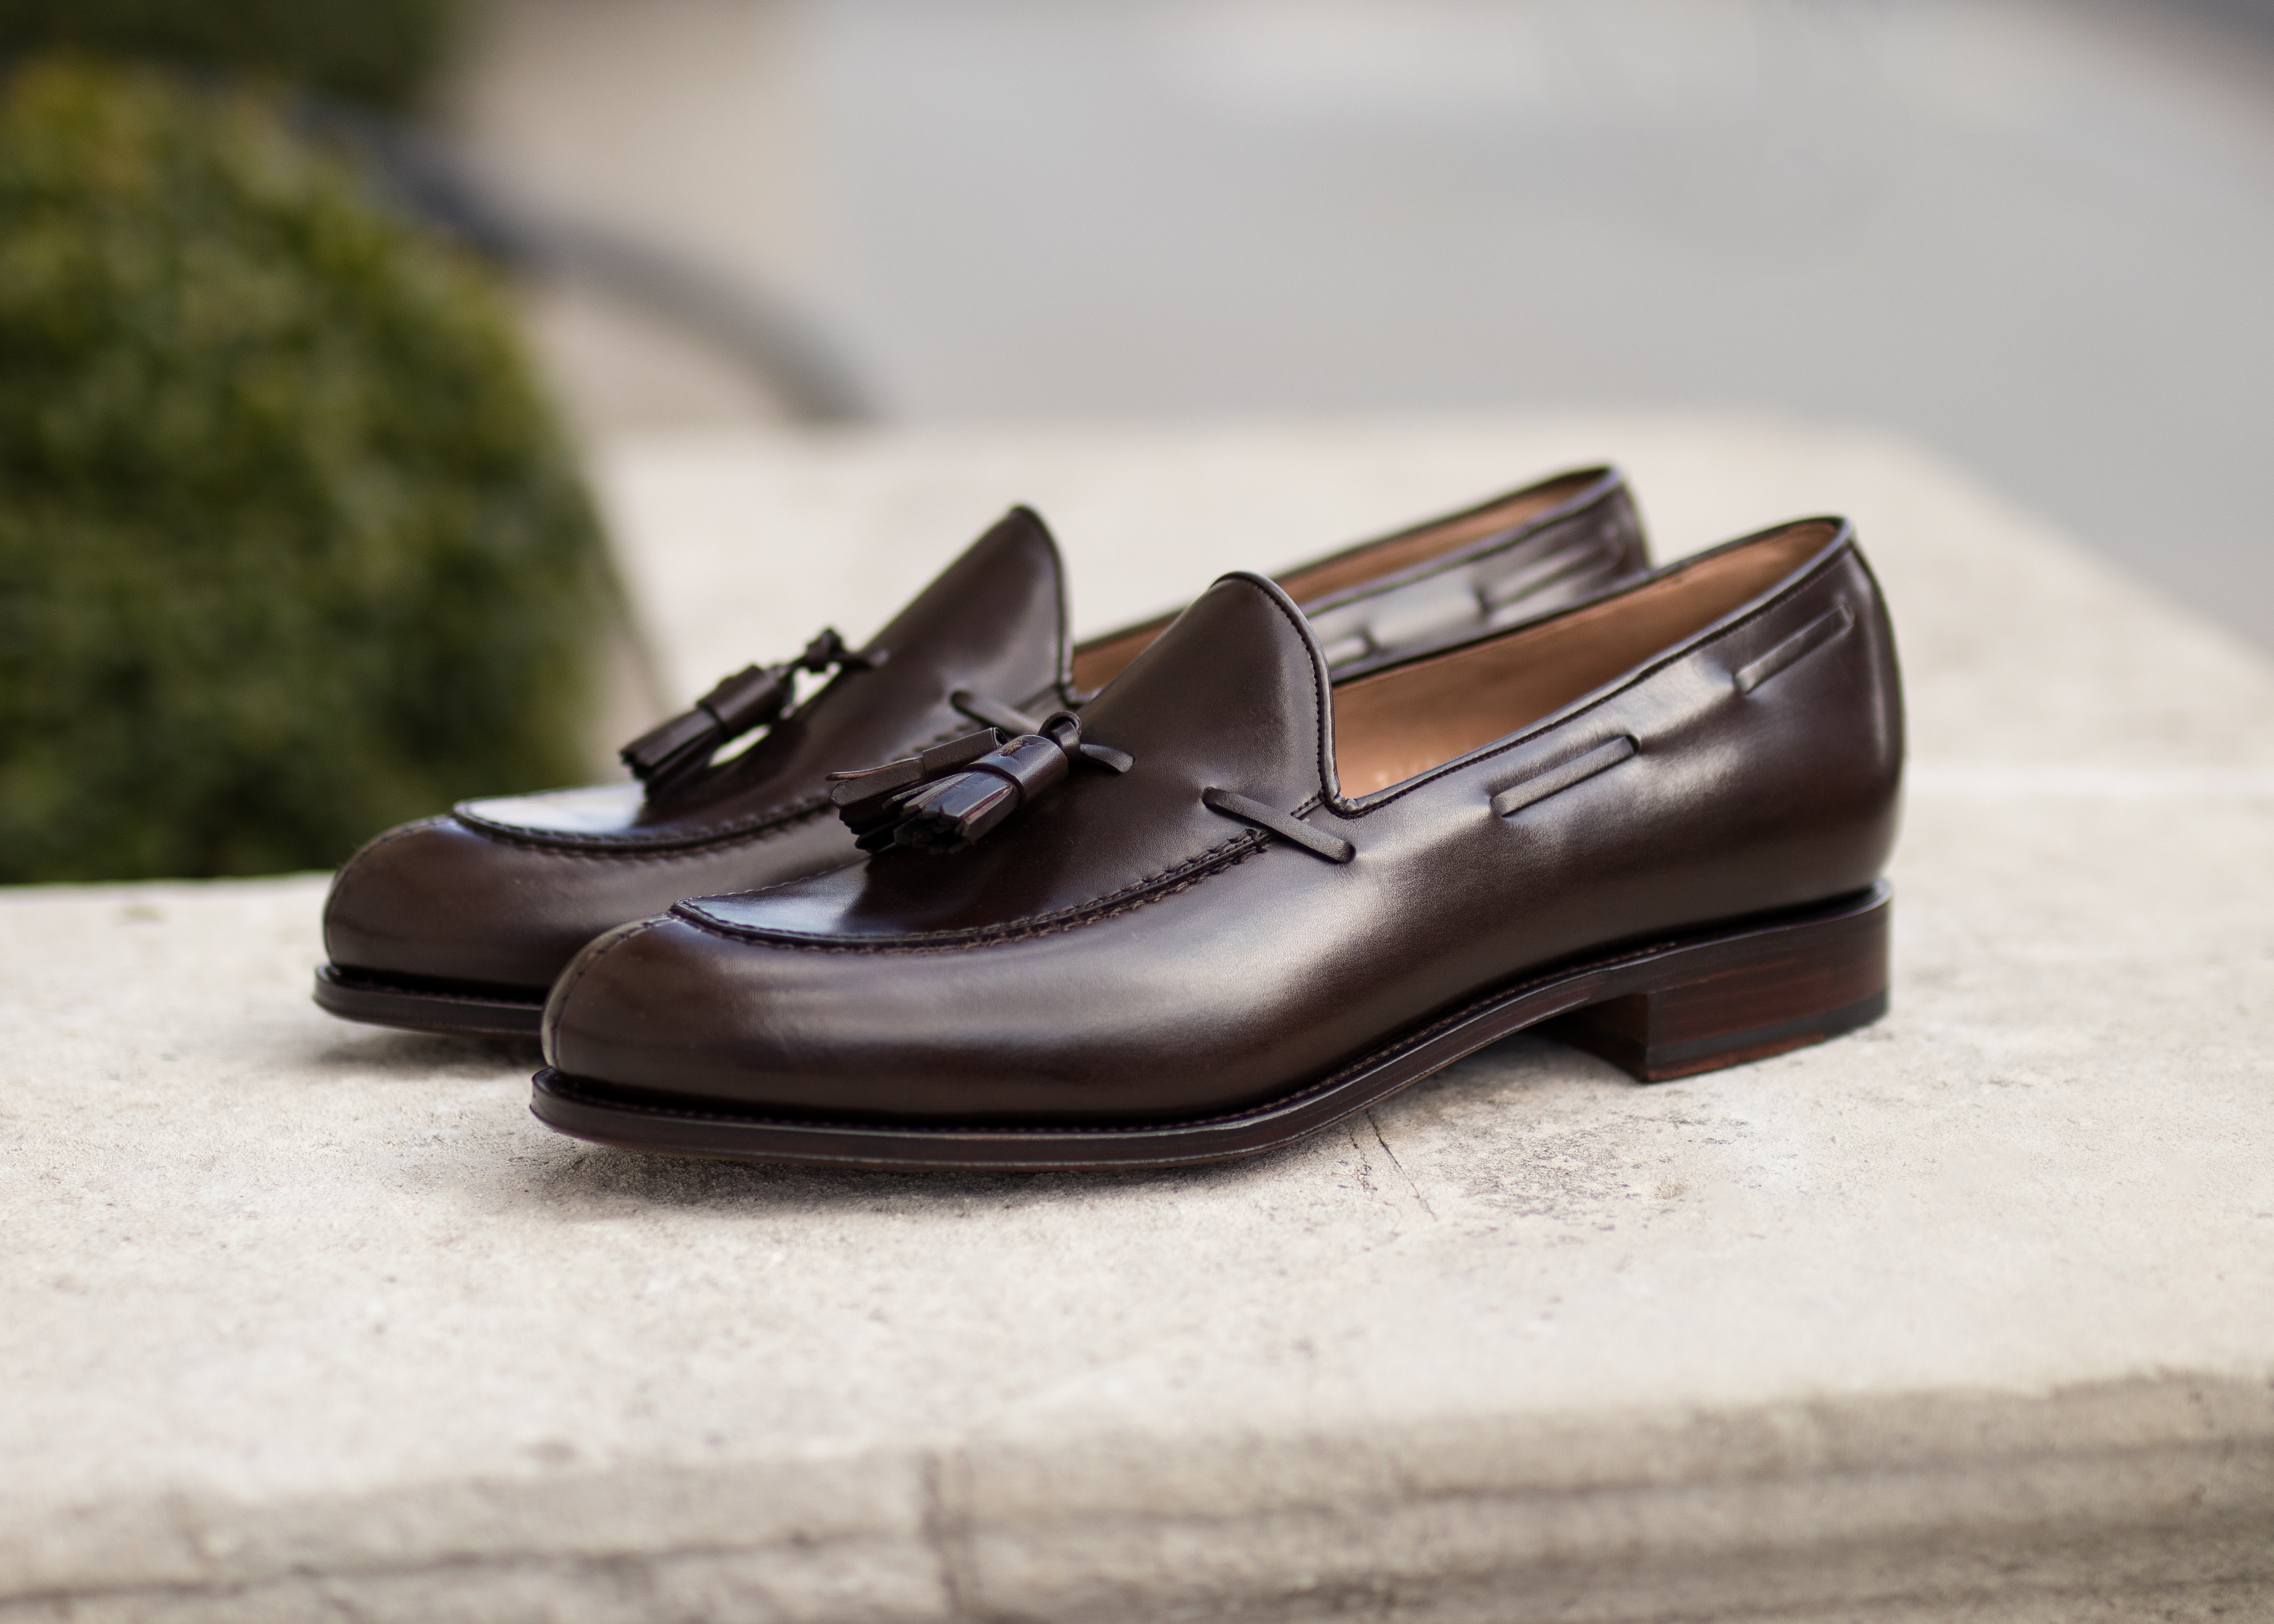 a4a1c712aa6 You can tell a gentleman by his shoes